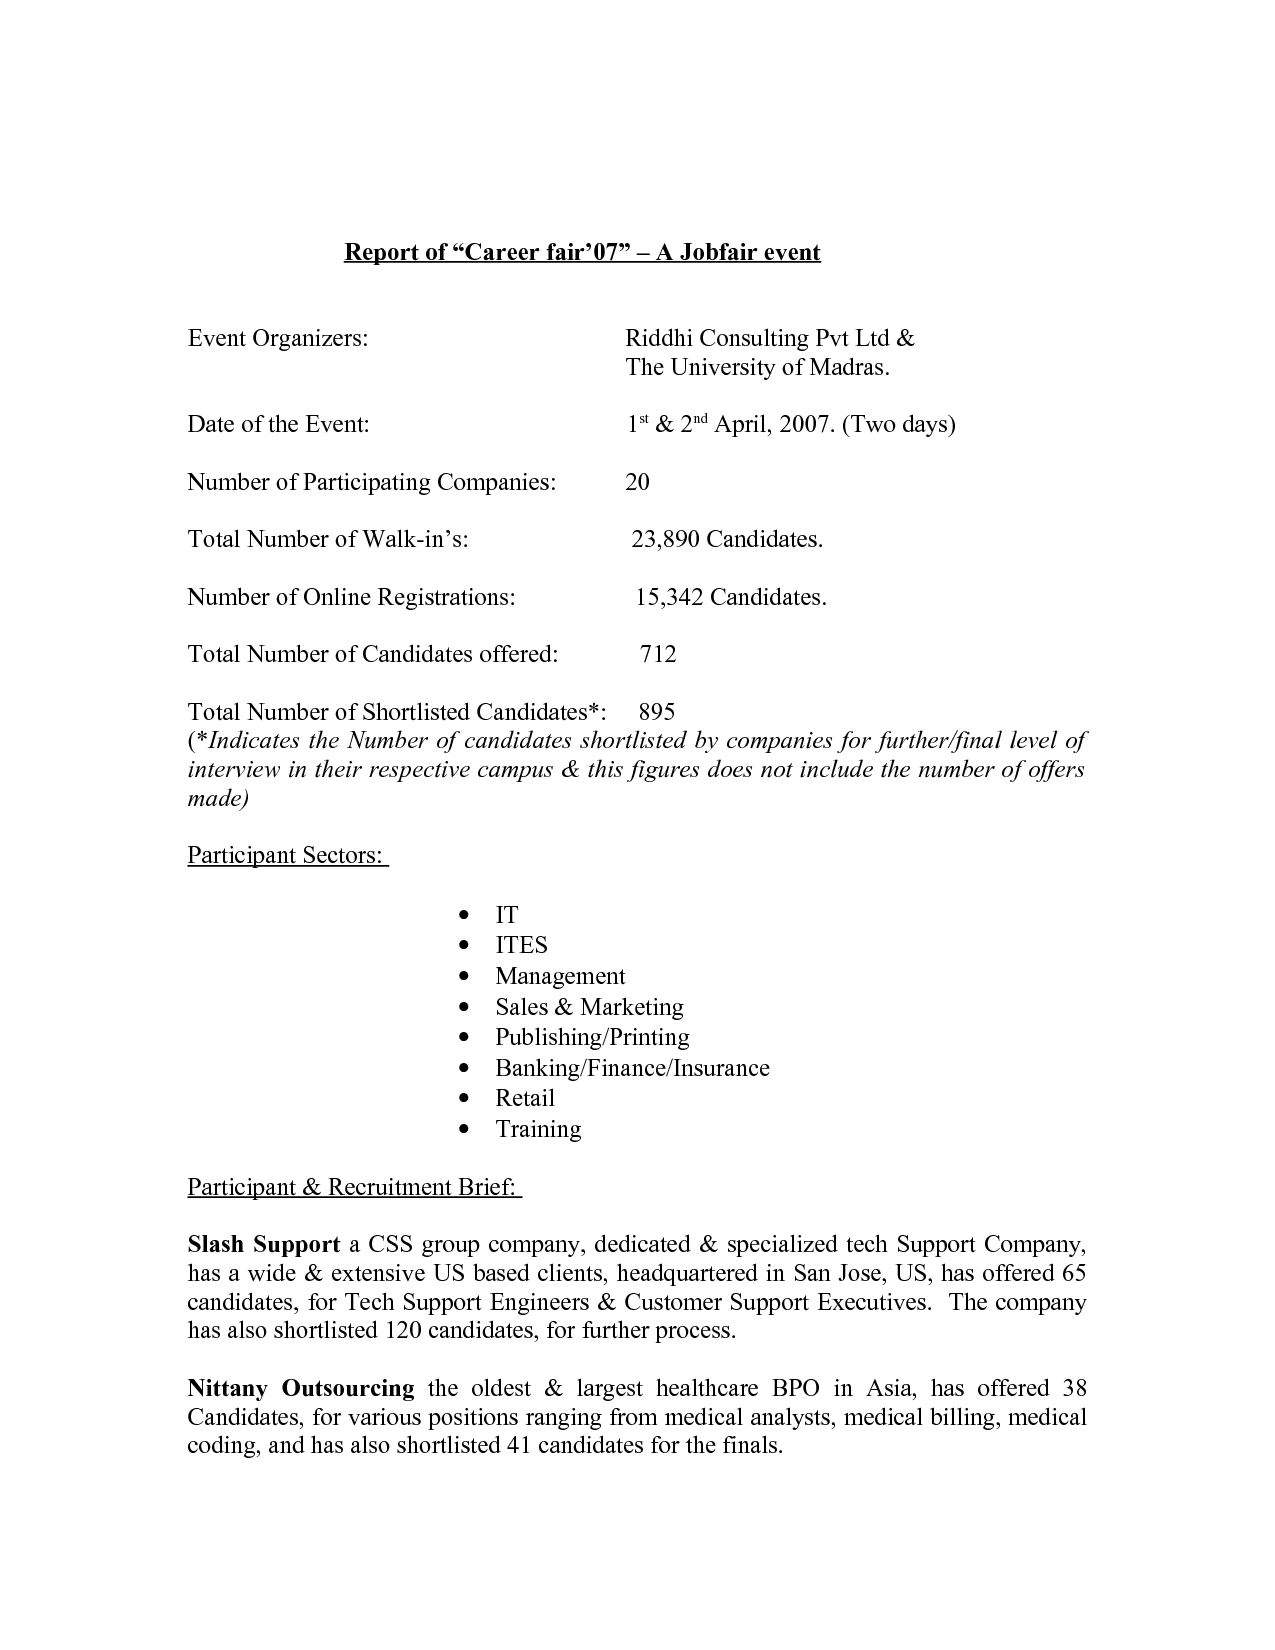 Resume Format Microsoft Word Entrancing Resume Format For Freshers Free Download Resume Format For Design Inspiration